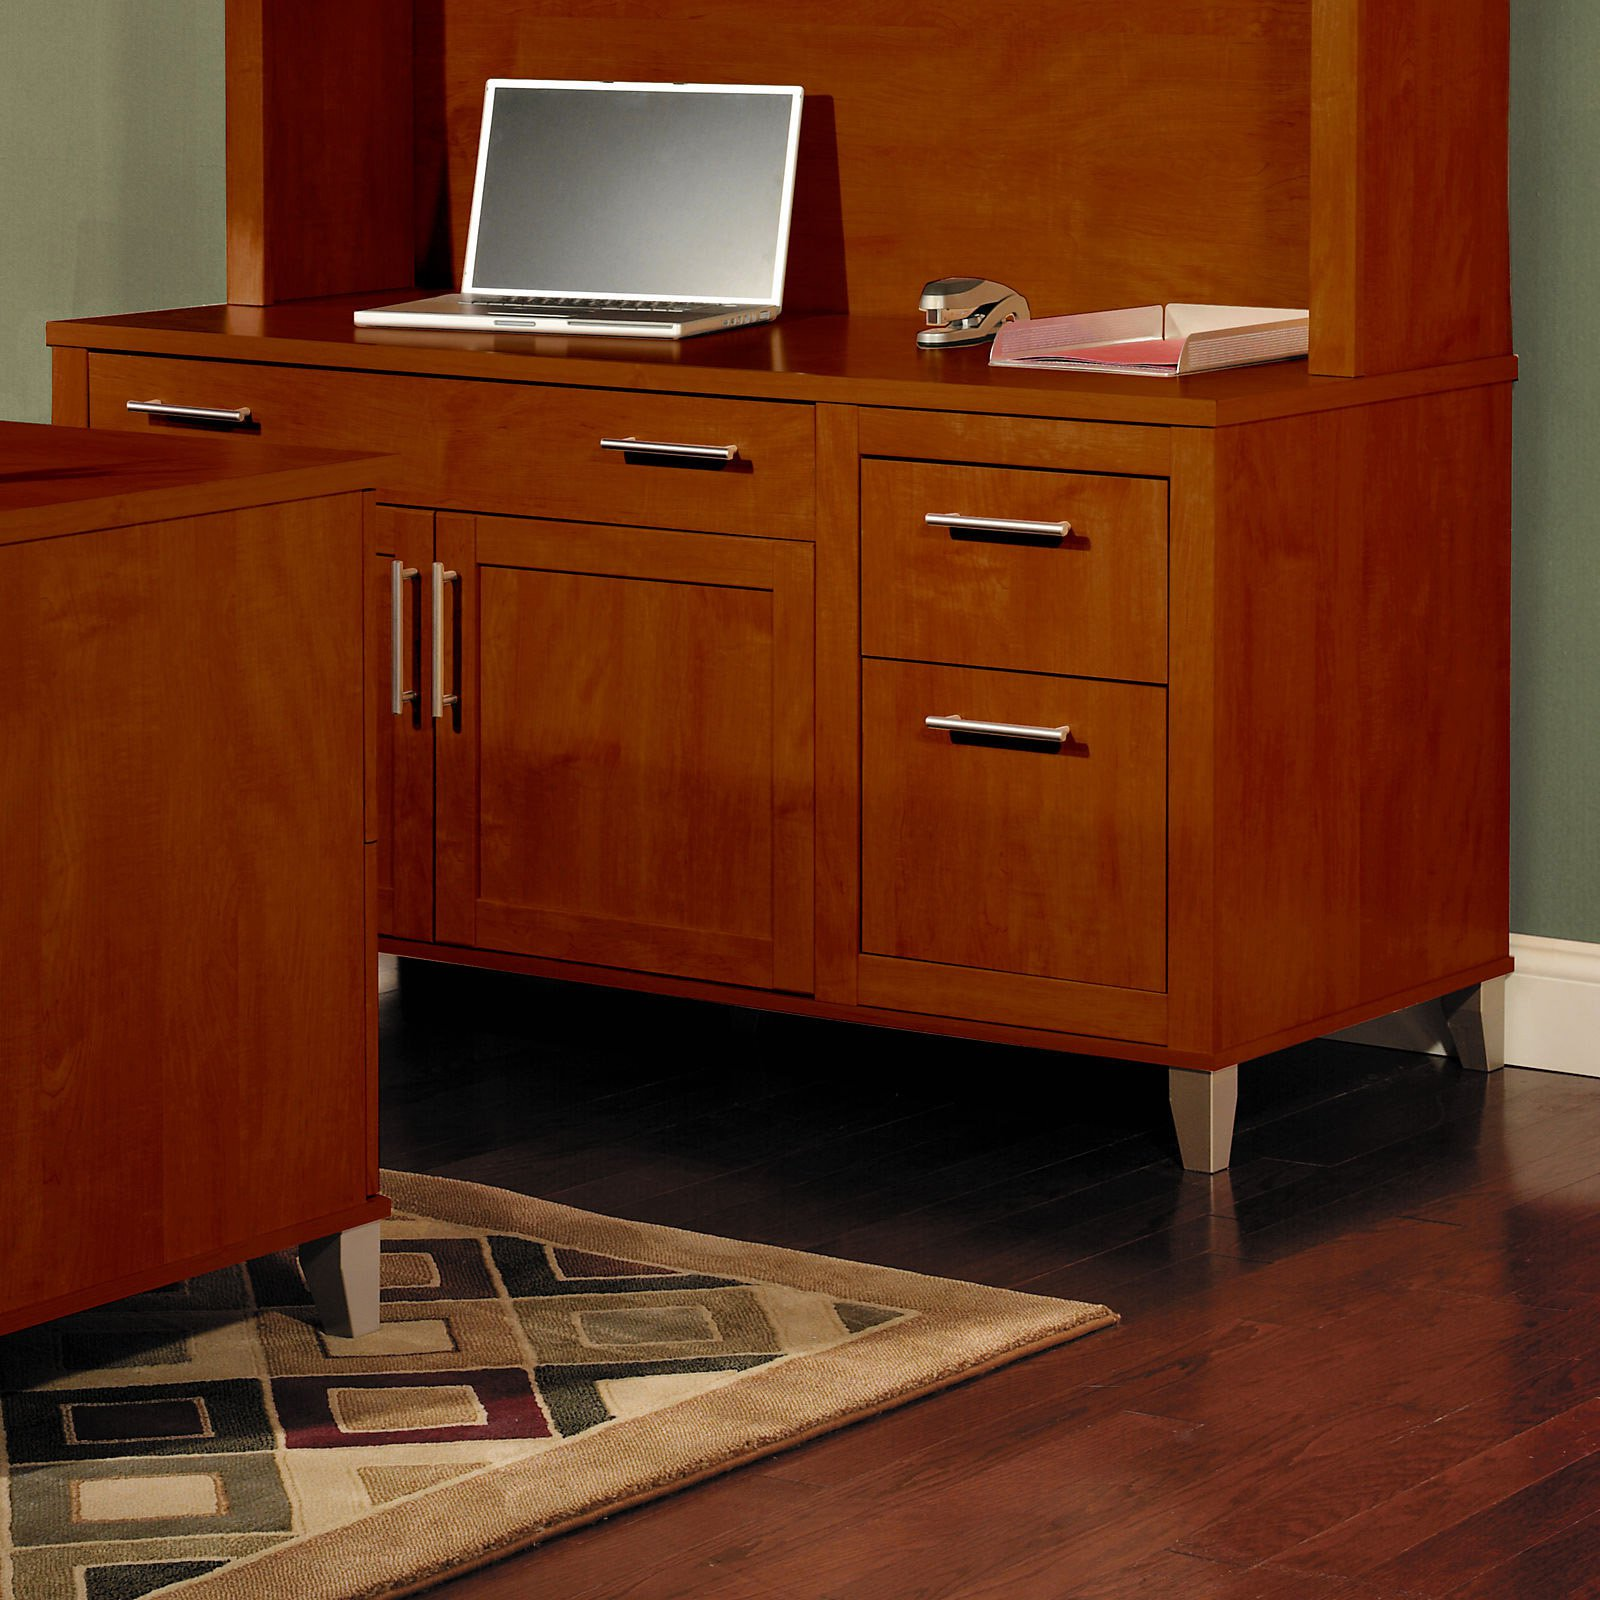 Bush Somerset Credenza Computer Desk Hansen Cherry by Bush Industries Inc